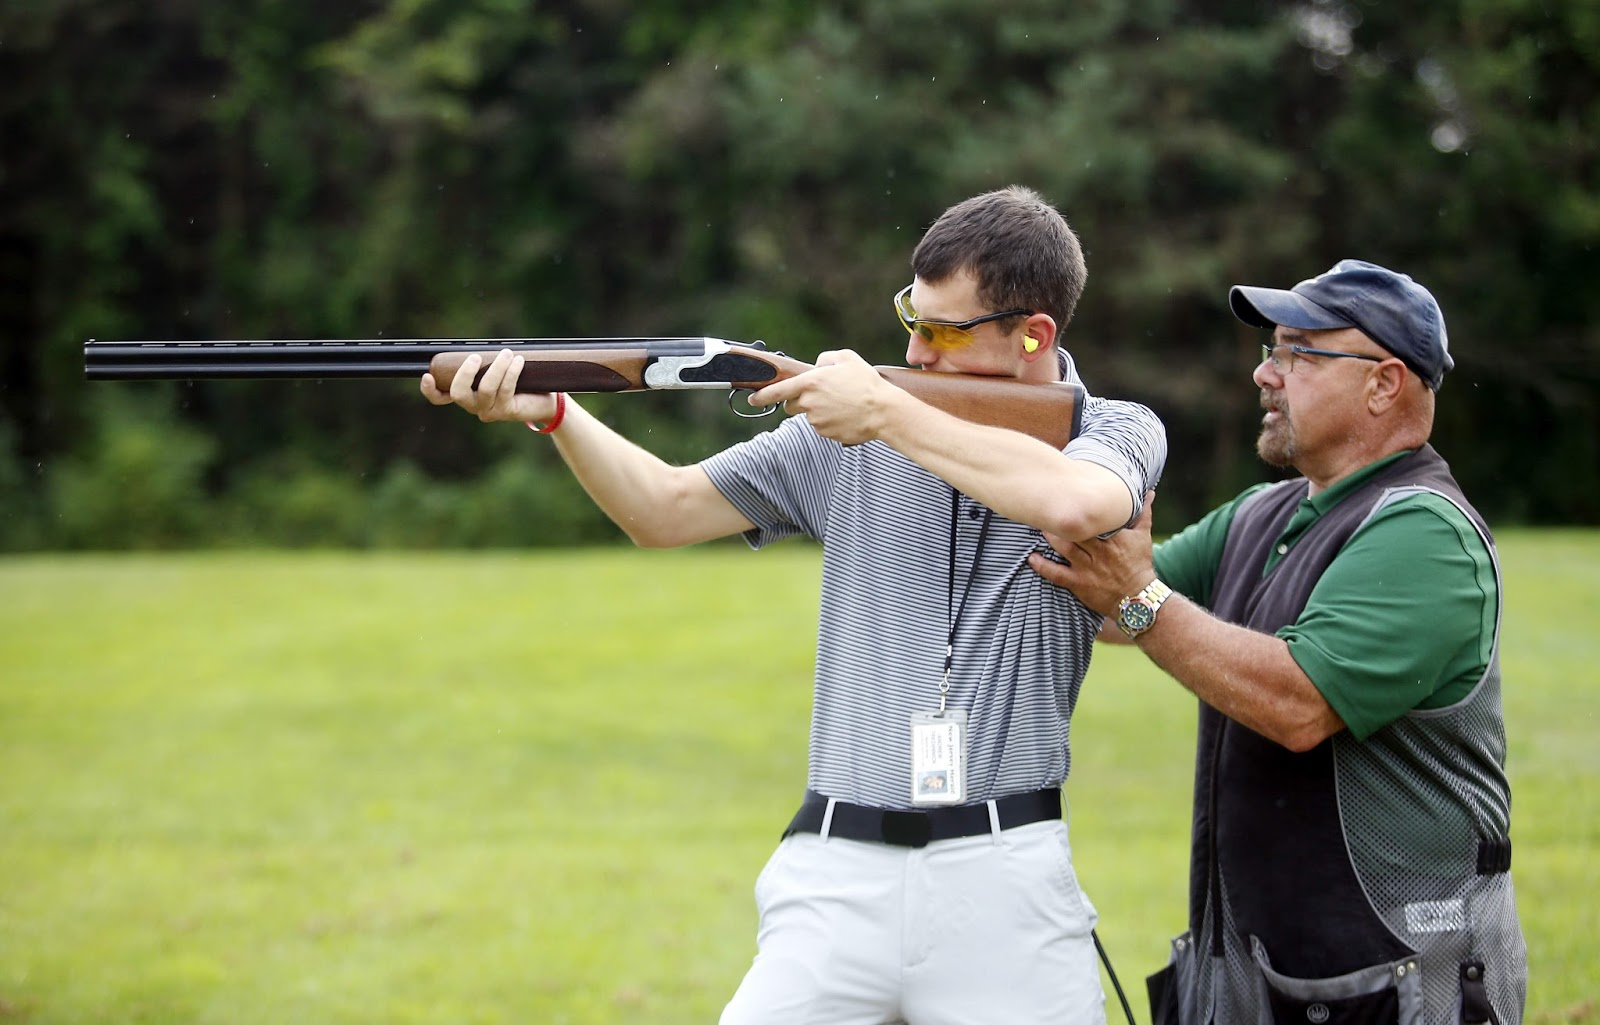 Clays against cancer gives skeet and trap shooters chance to help